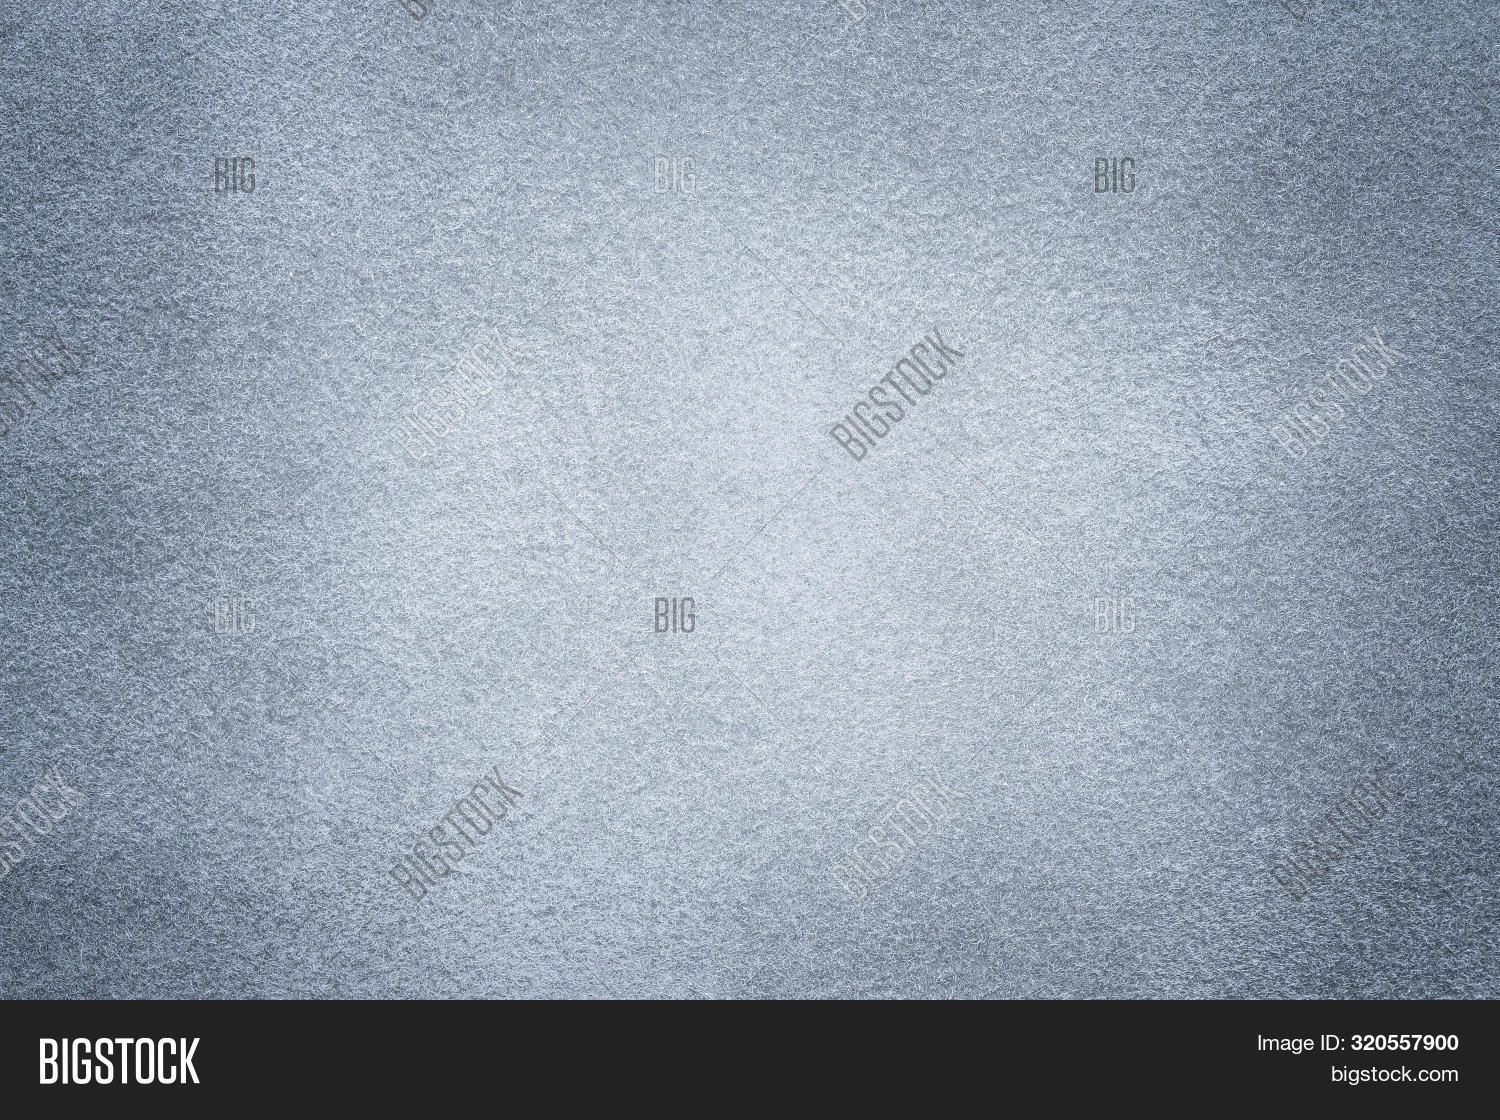 Background Light Gray Image Photo Free Trial Bigstock